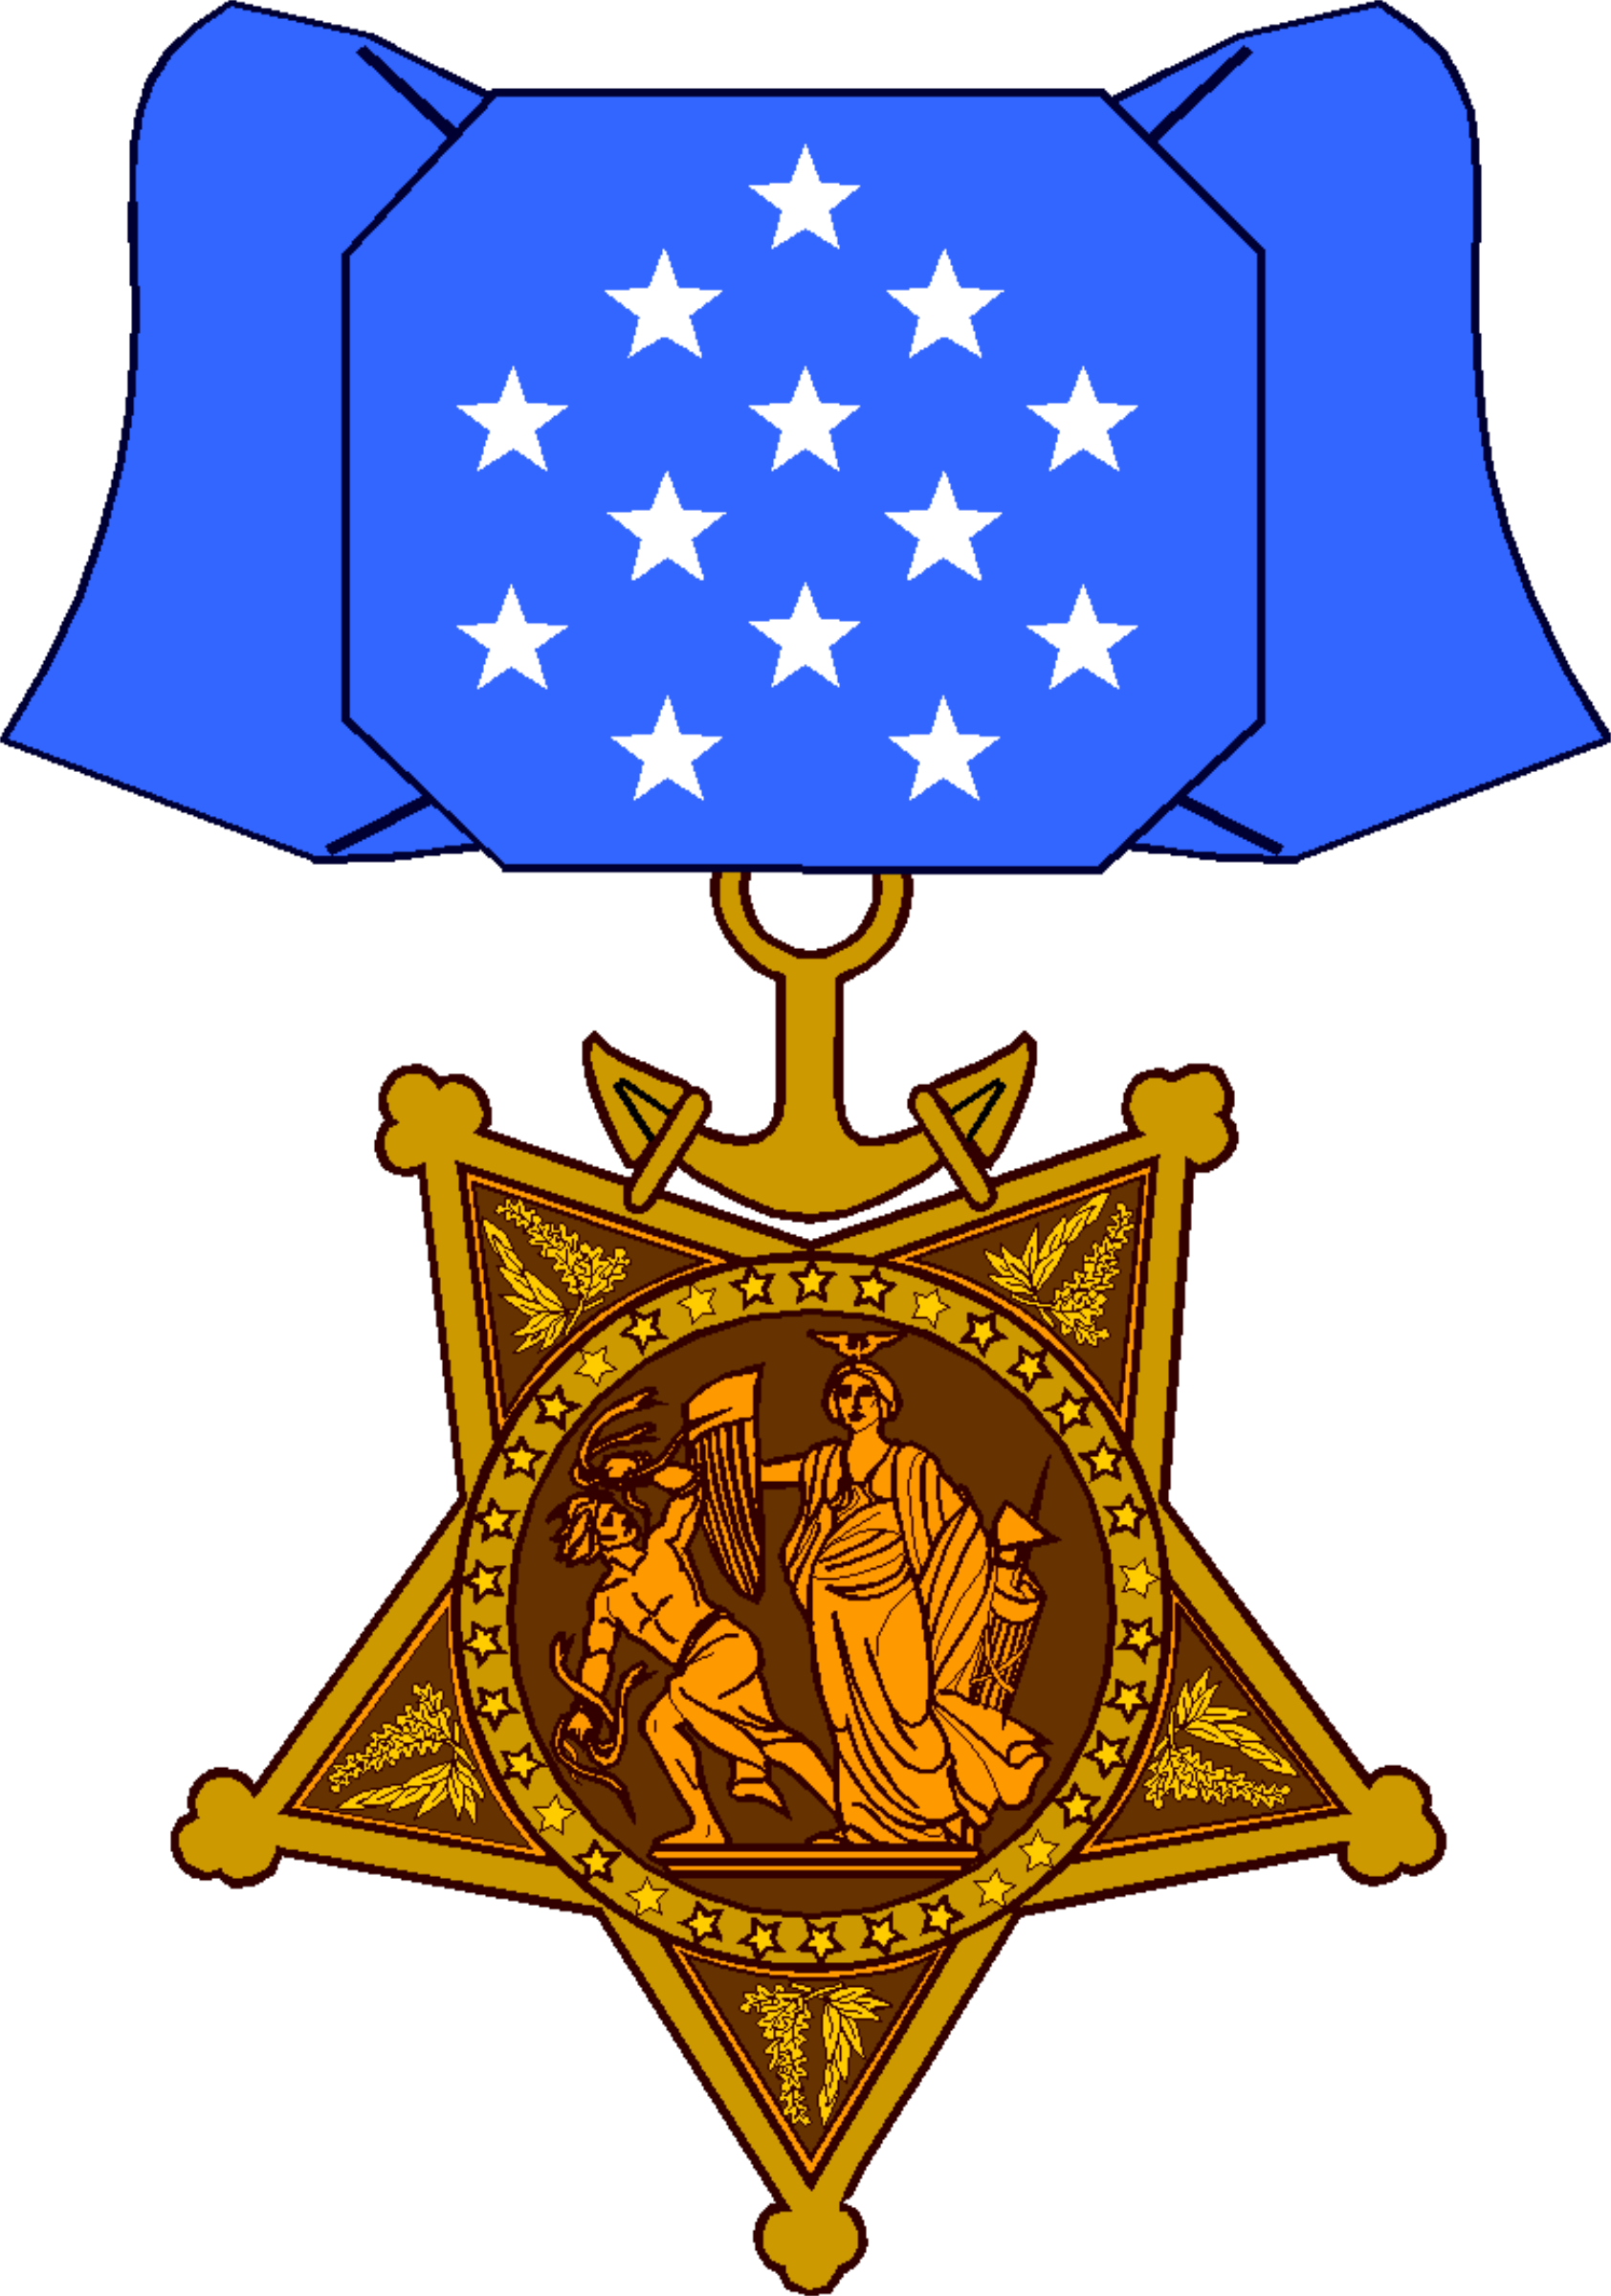 Medal of Honor by barnheartowl